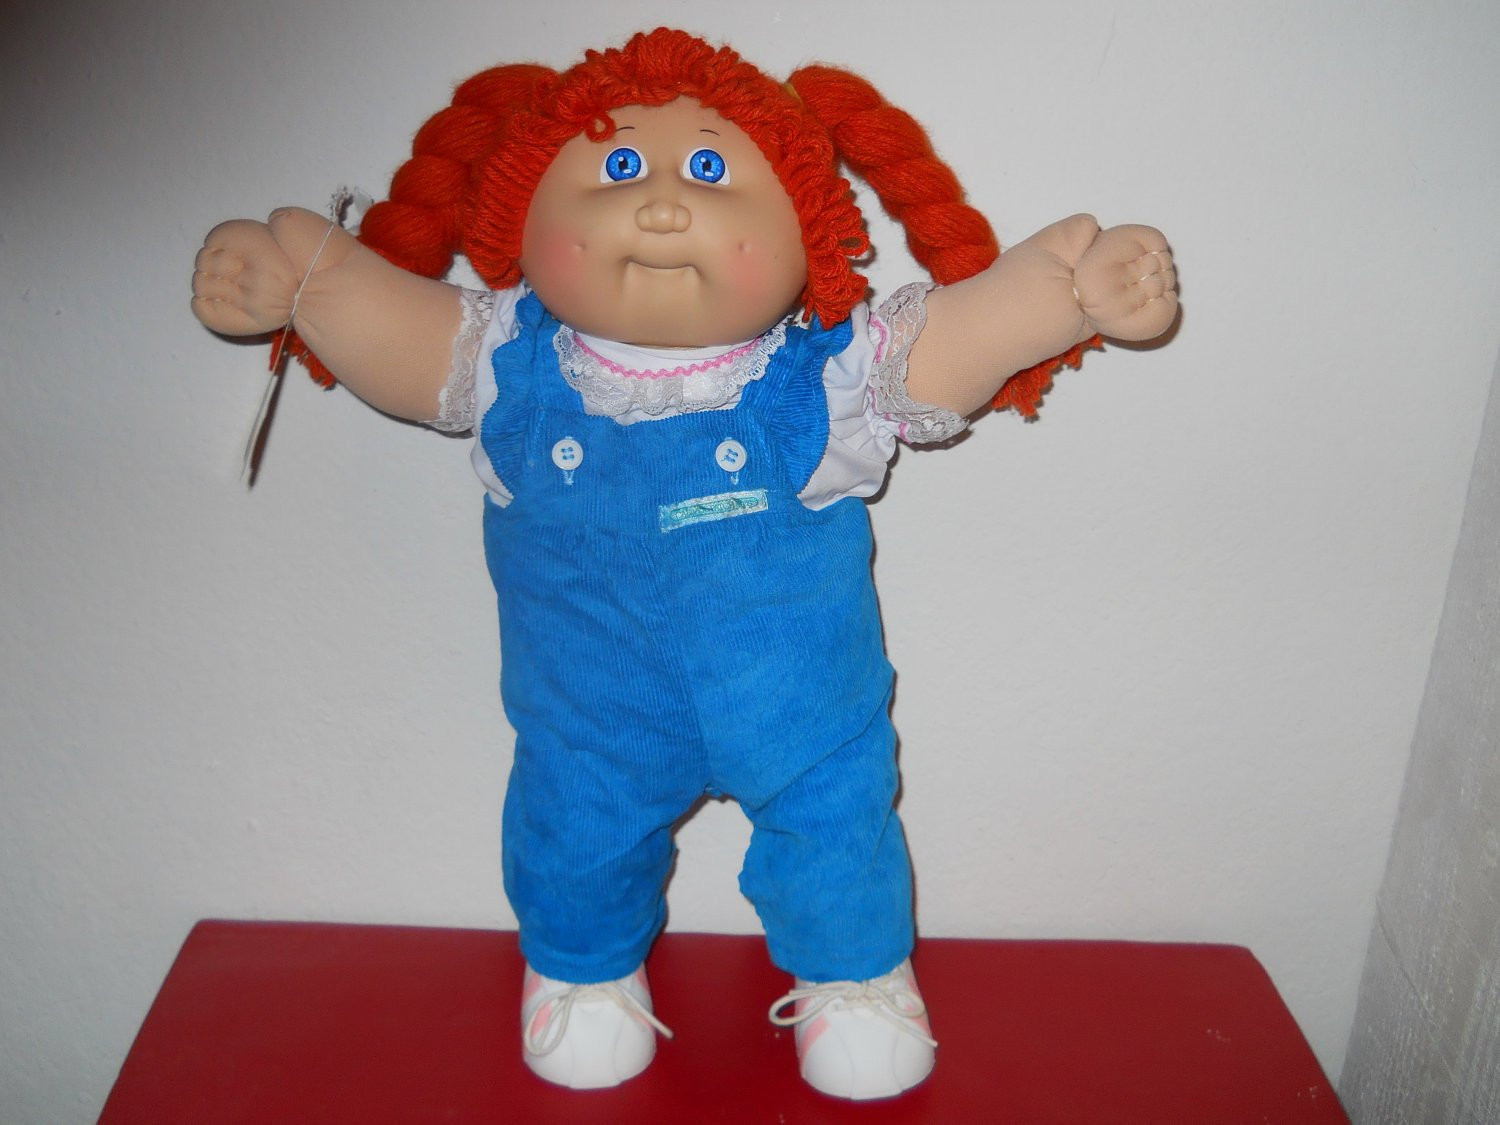 Vintage Cabbage Patch Dolls Best Of Vintage 1983 Cabbage Patch Doll Diane Olympia Of Vintage Cabbage Patch Dolls Fresh Cabbage Patch Kids Vintage Doll Limited Edition 30th